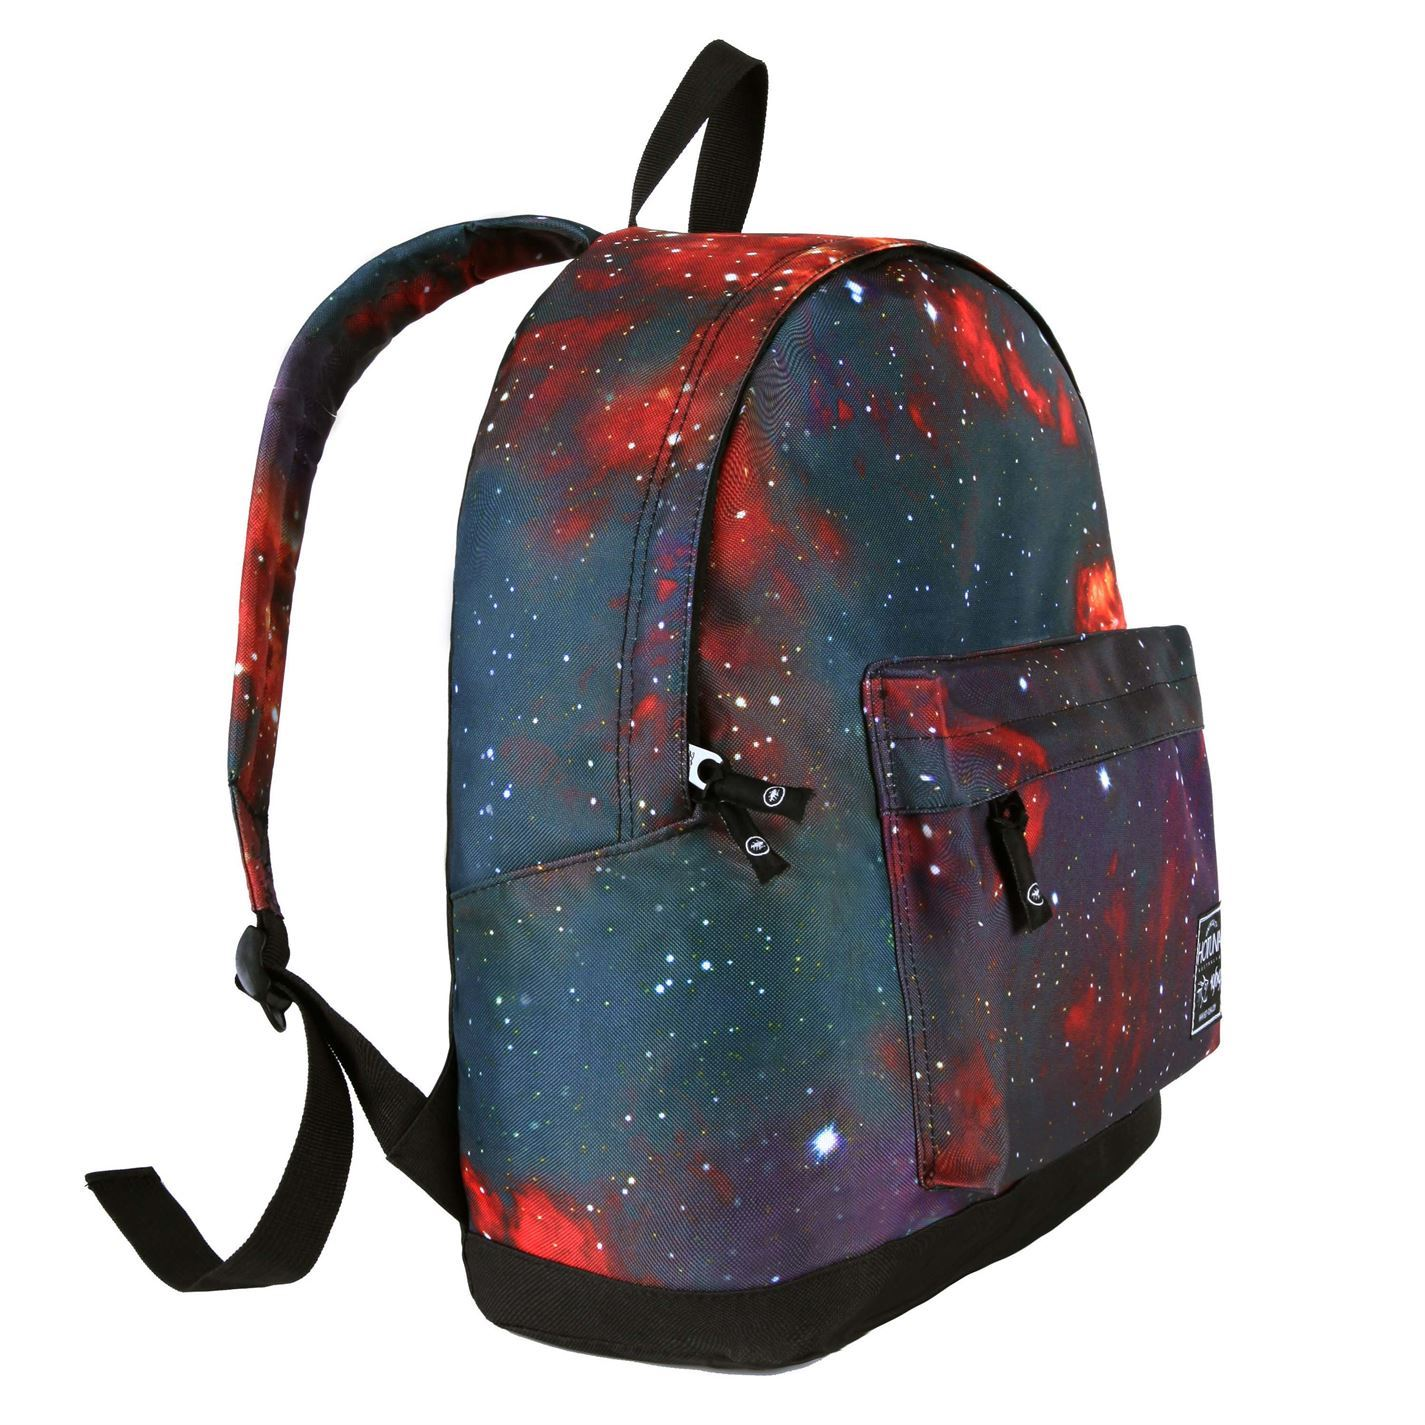 c74b3de51b Details about Hot Tuna Galaxy Backpack Black Red Bag Holdall Carryall  Rucksack Knapsack